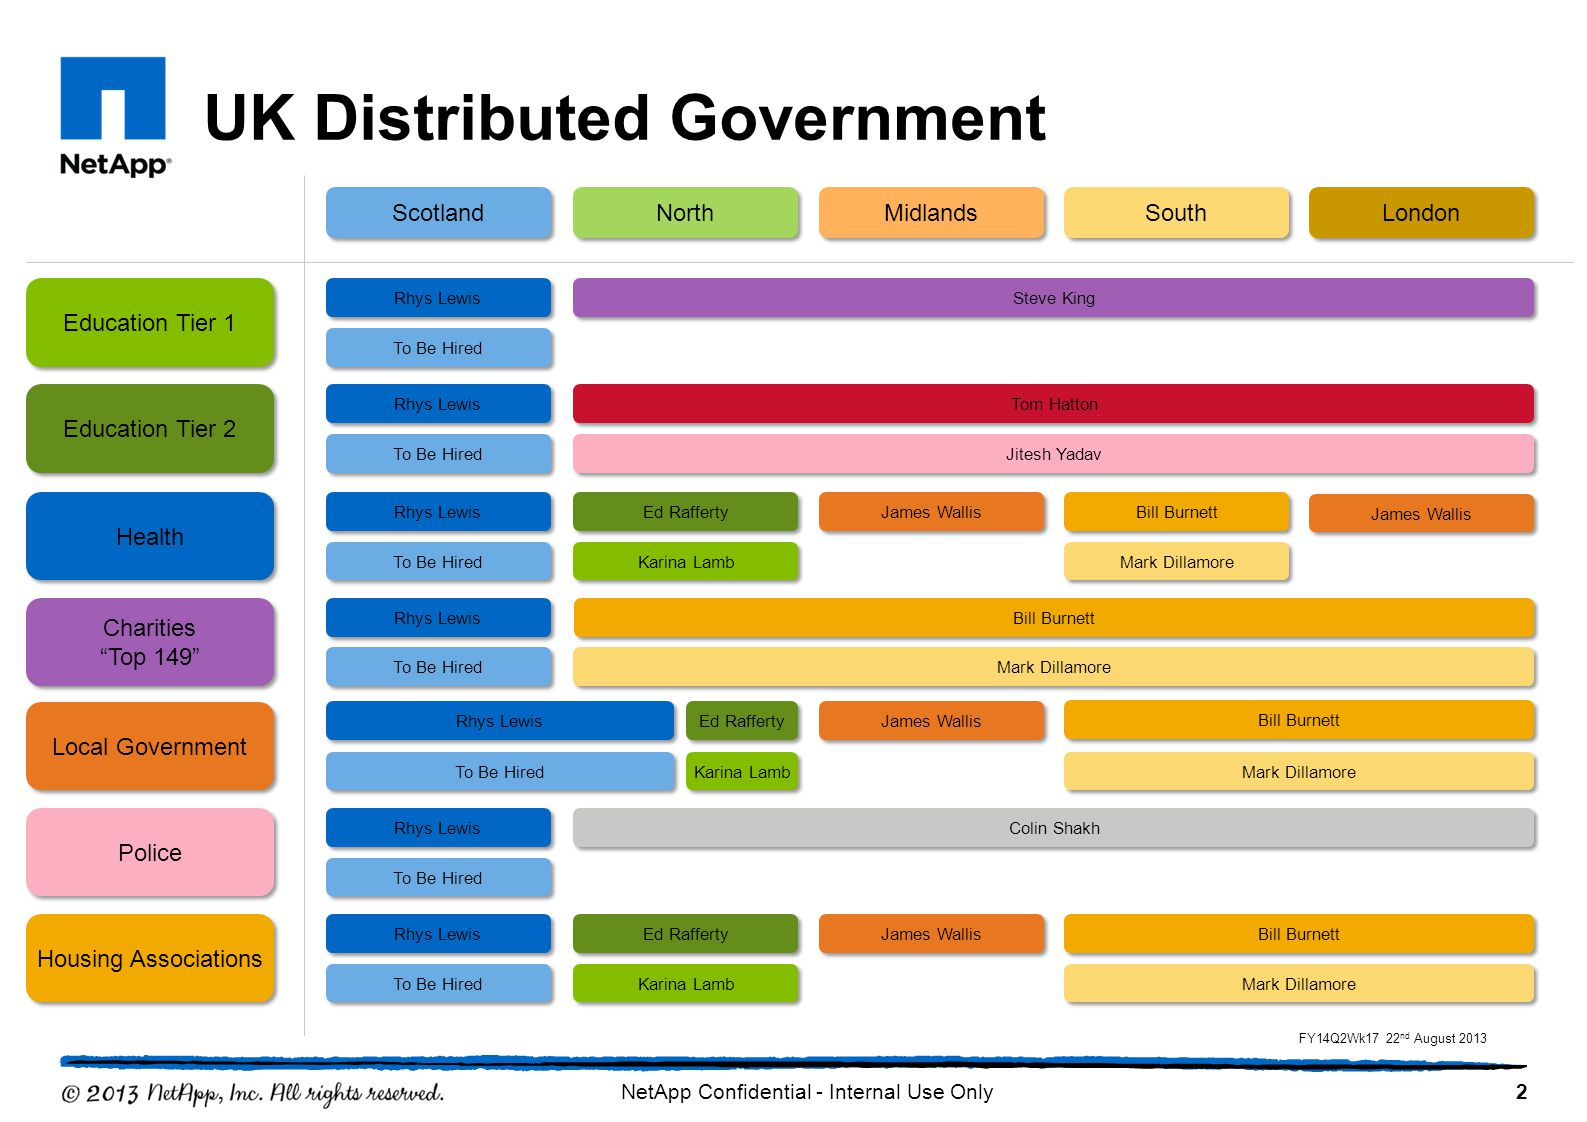 UK Distributed Government